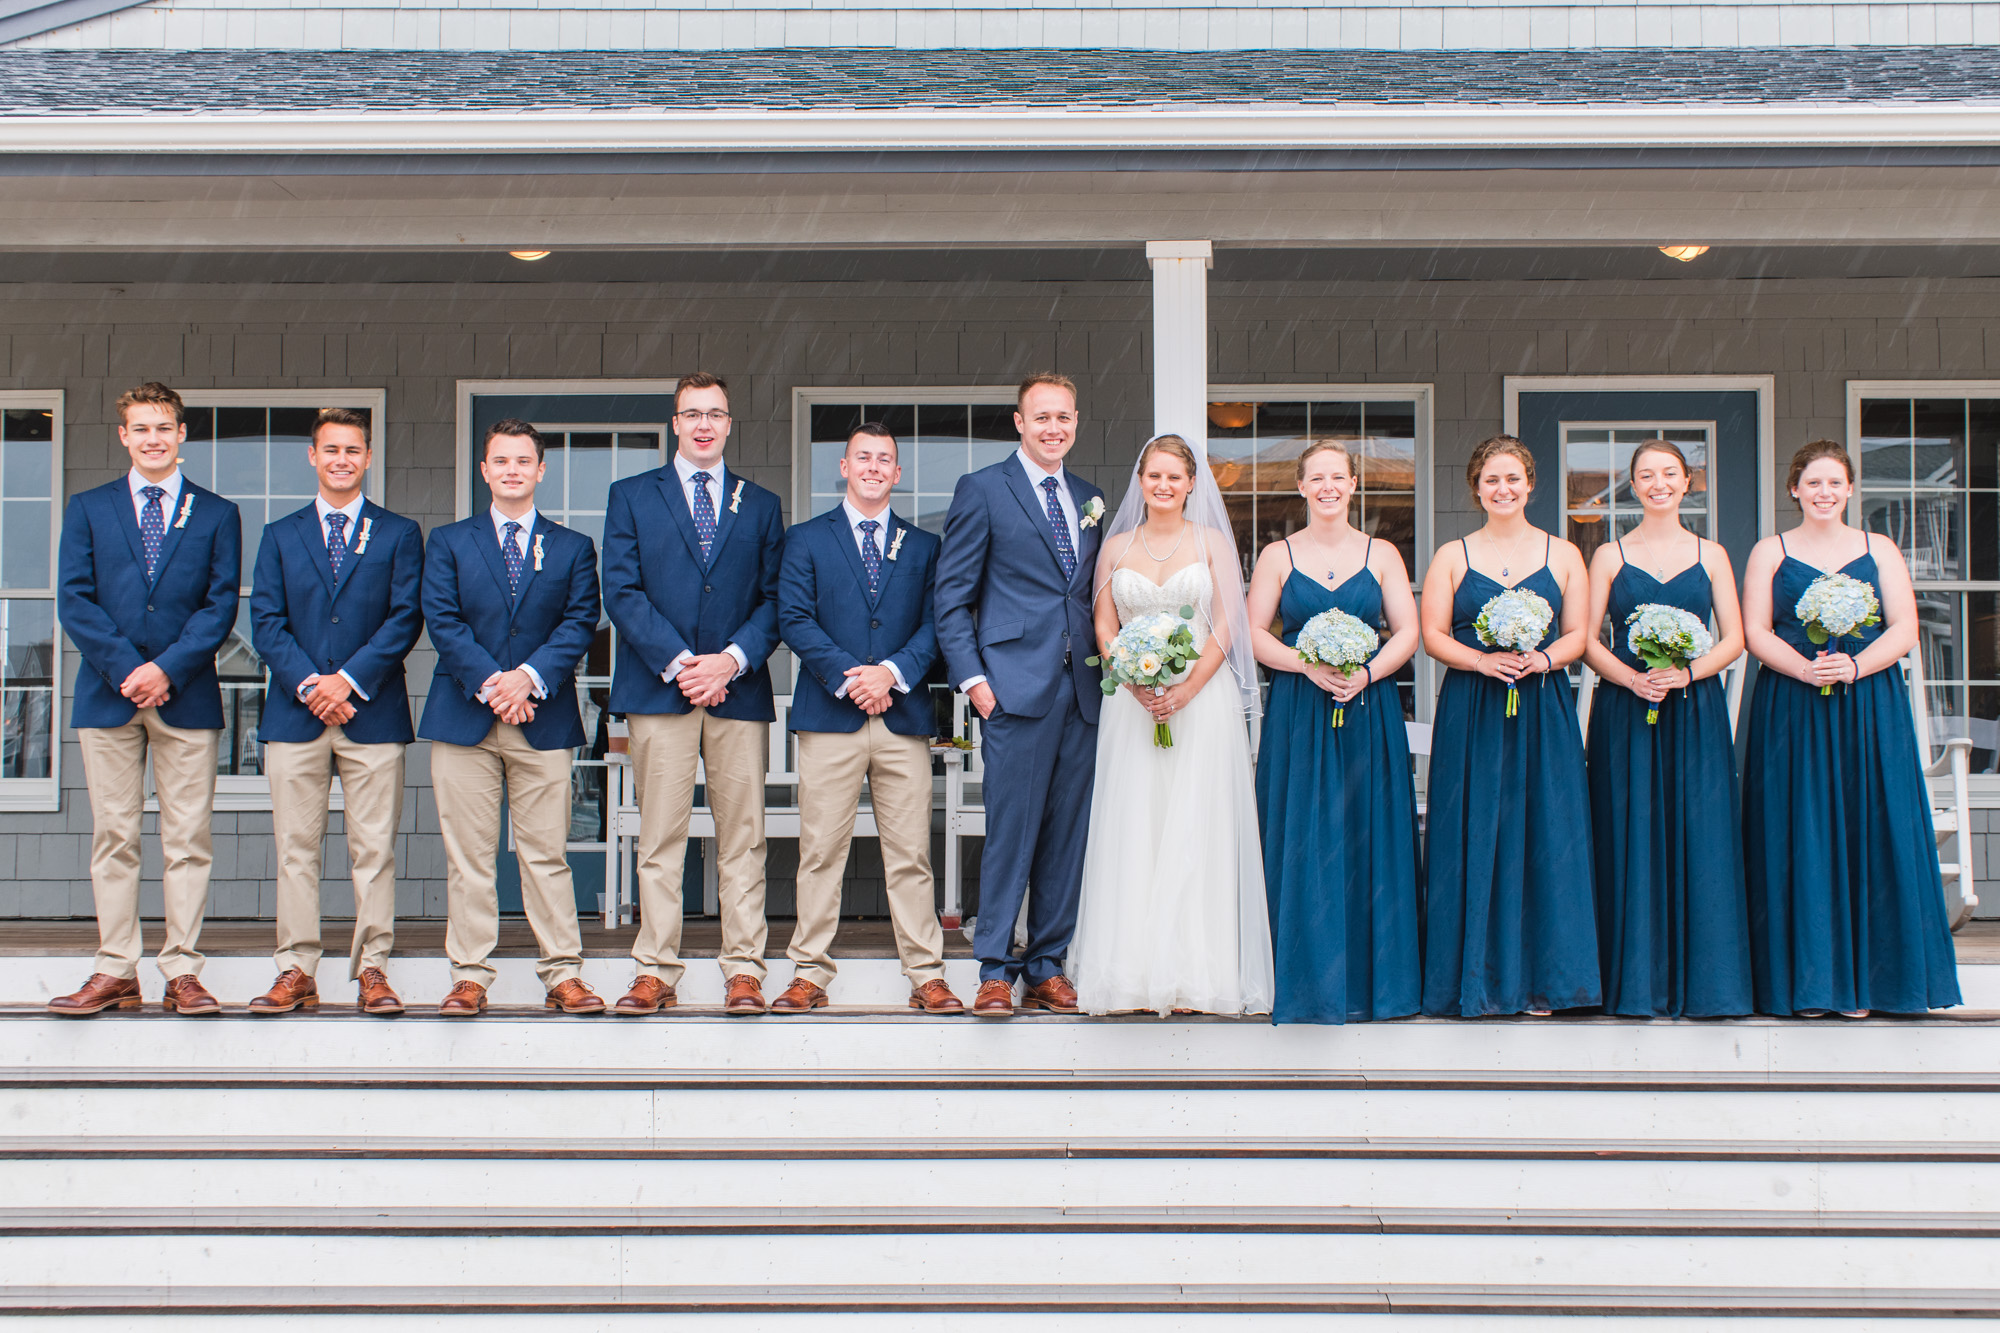 brant-beach-yacht-club-lbi-wedding-photographer-kayla-30.jpg